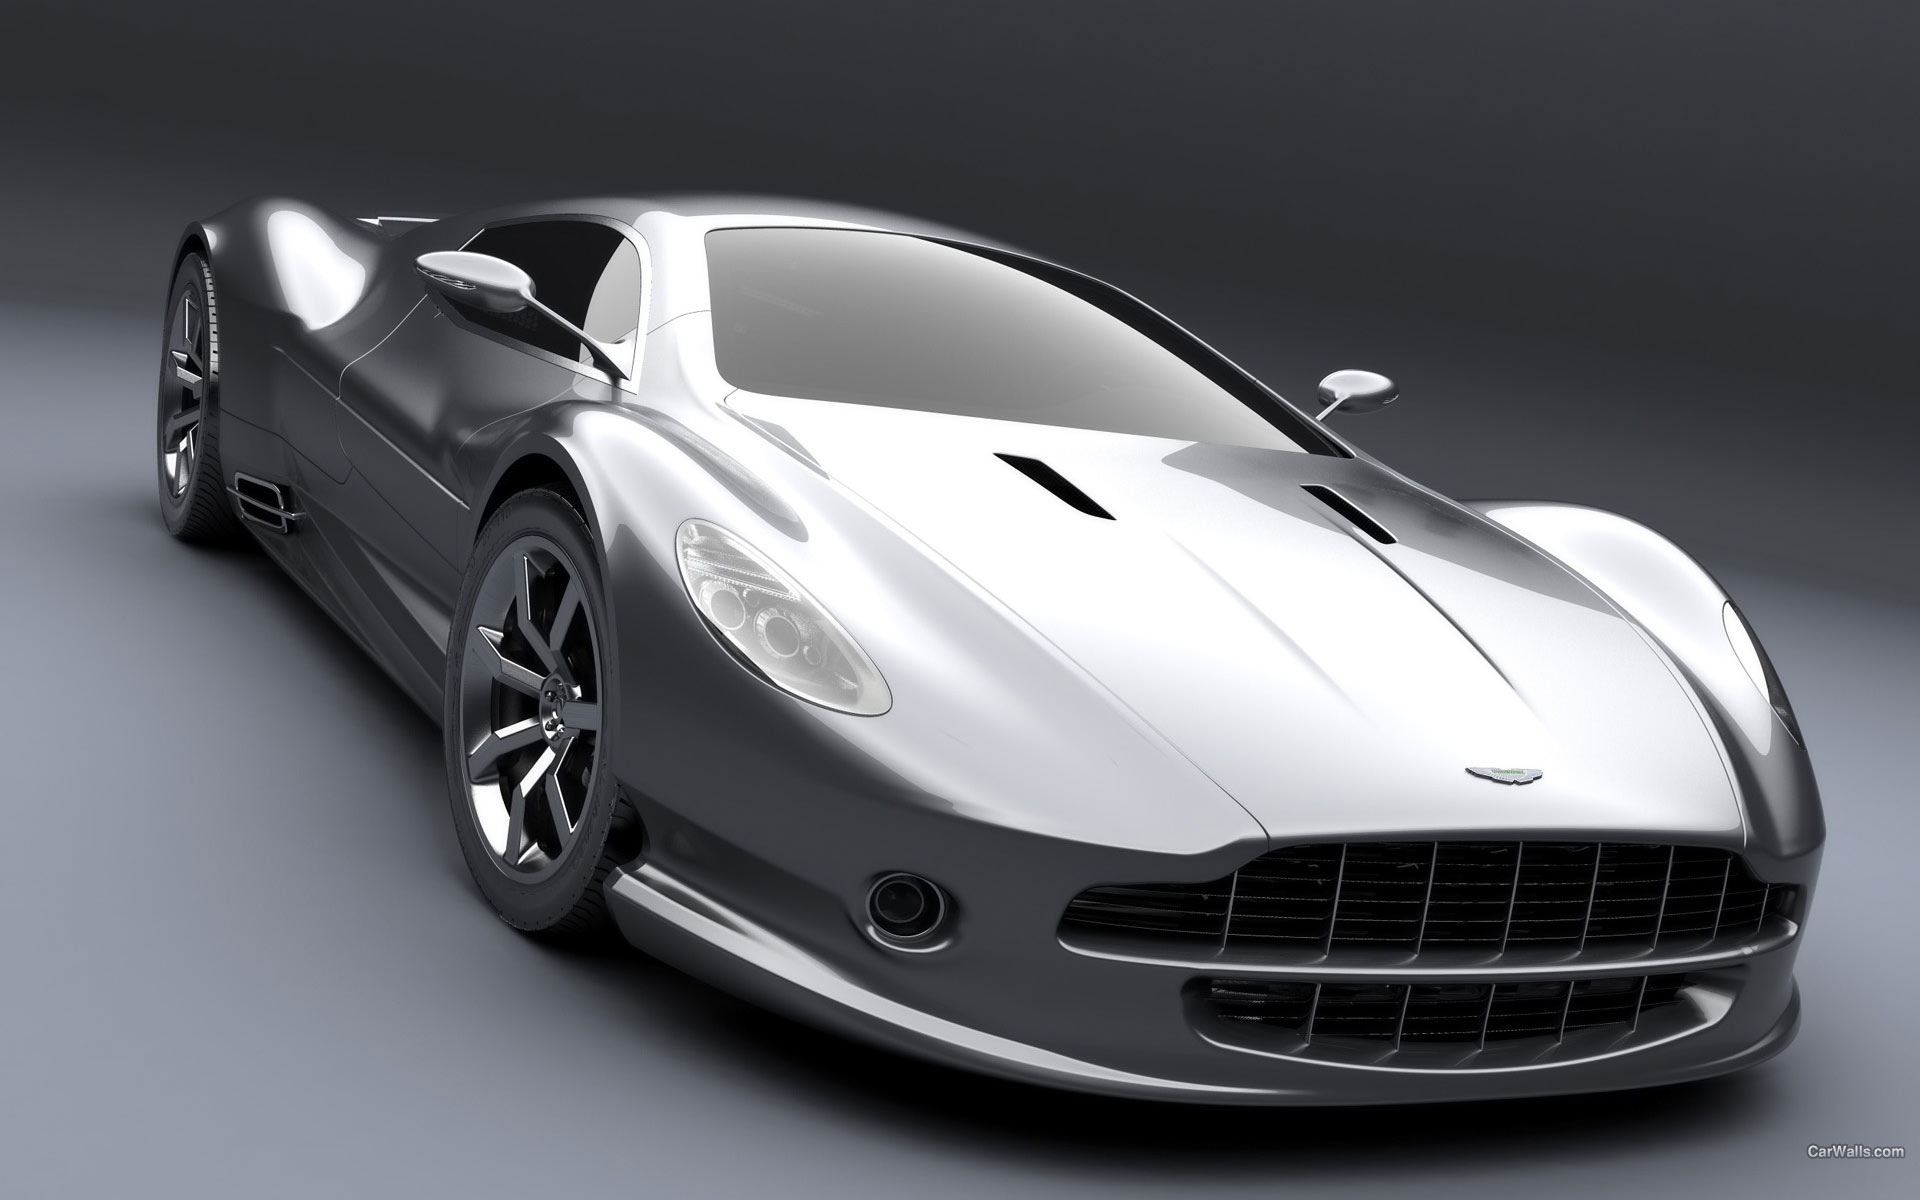 aston martin concept car desktop wallpaper download aston martin 1920x1200